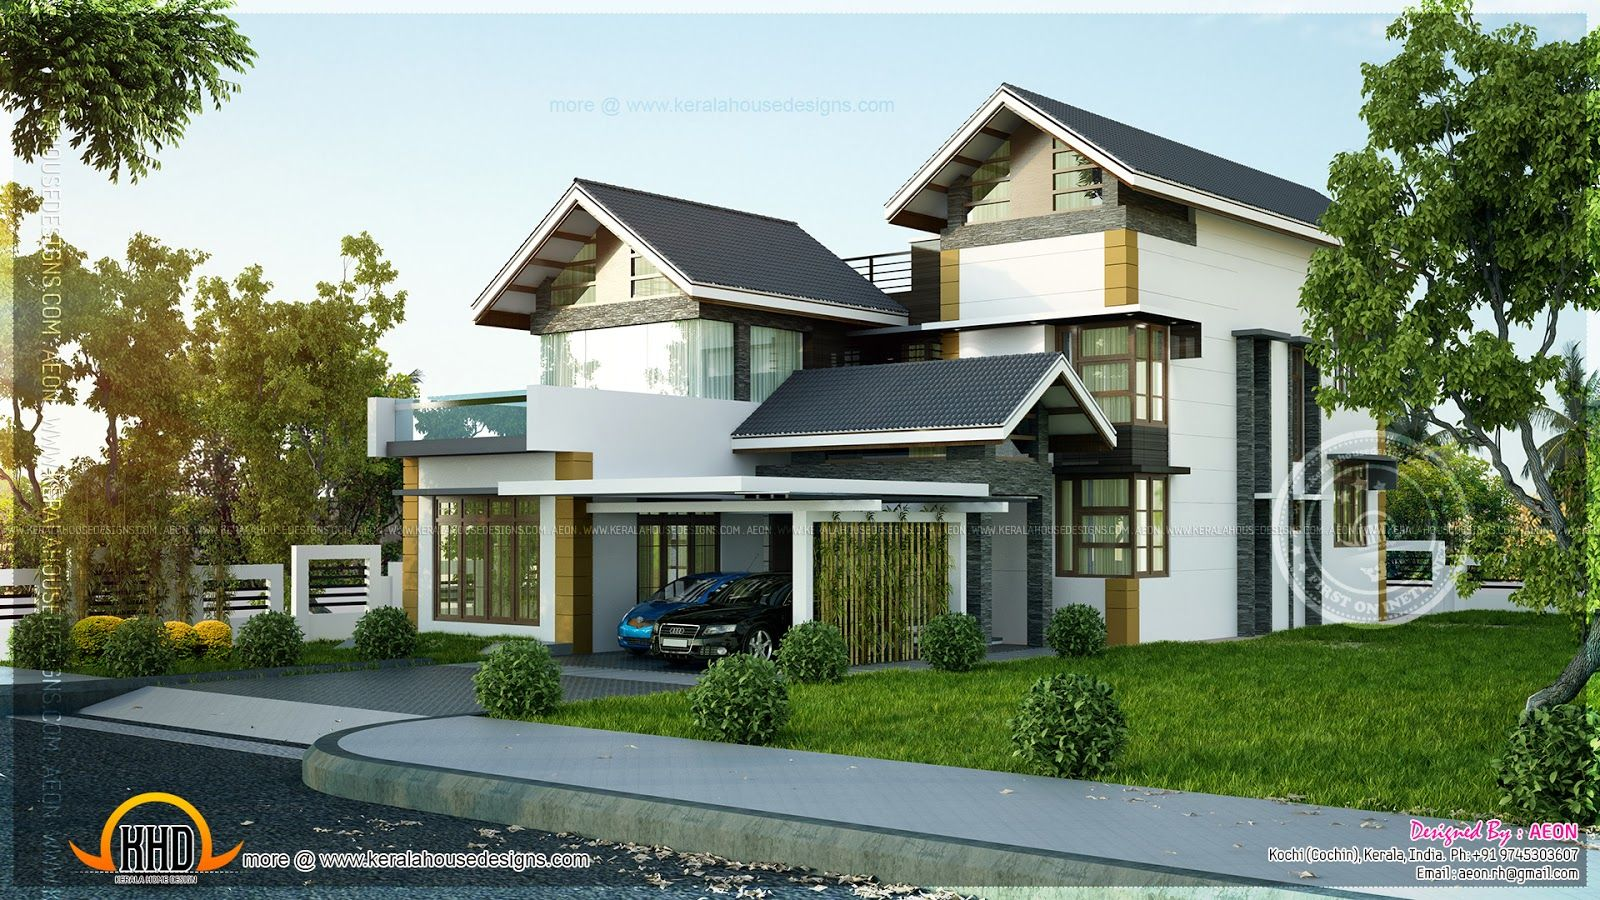 Four bedroom house plans two story homes modern also pin by nnandhgpll on roofing in design rh pinterest